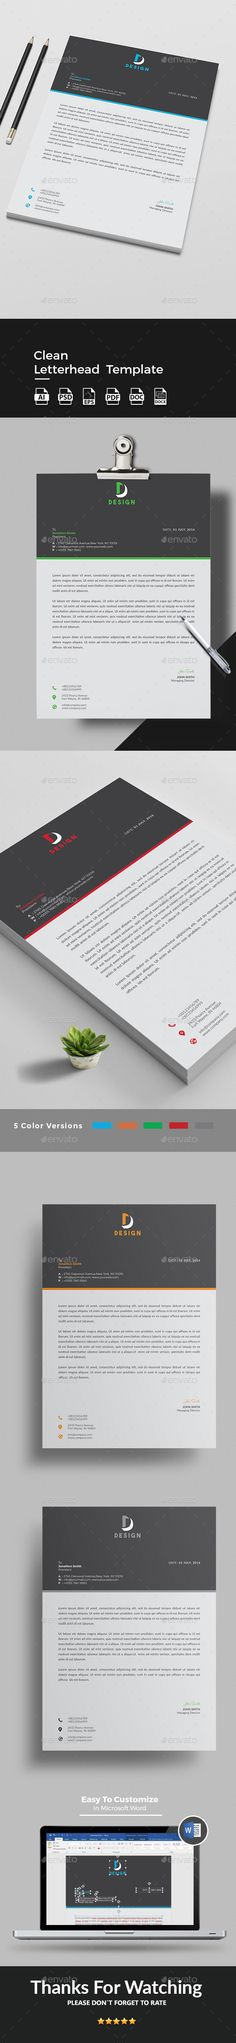 Letterhead Stationery, Templates and Design templates - personal letterhead template